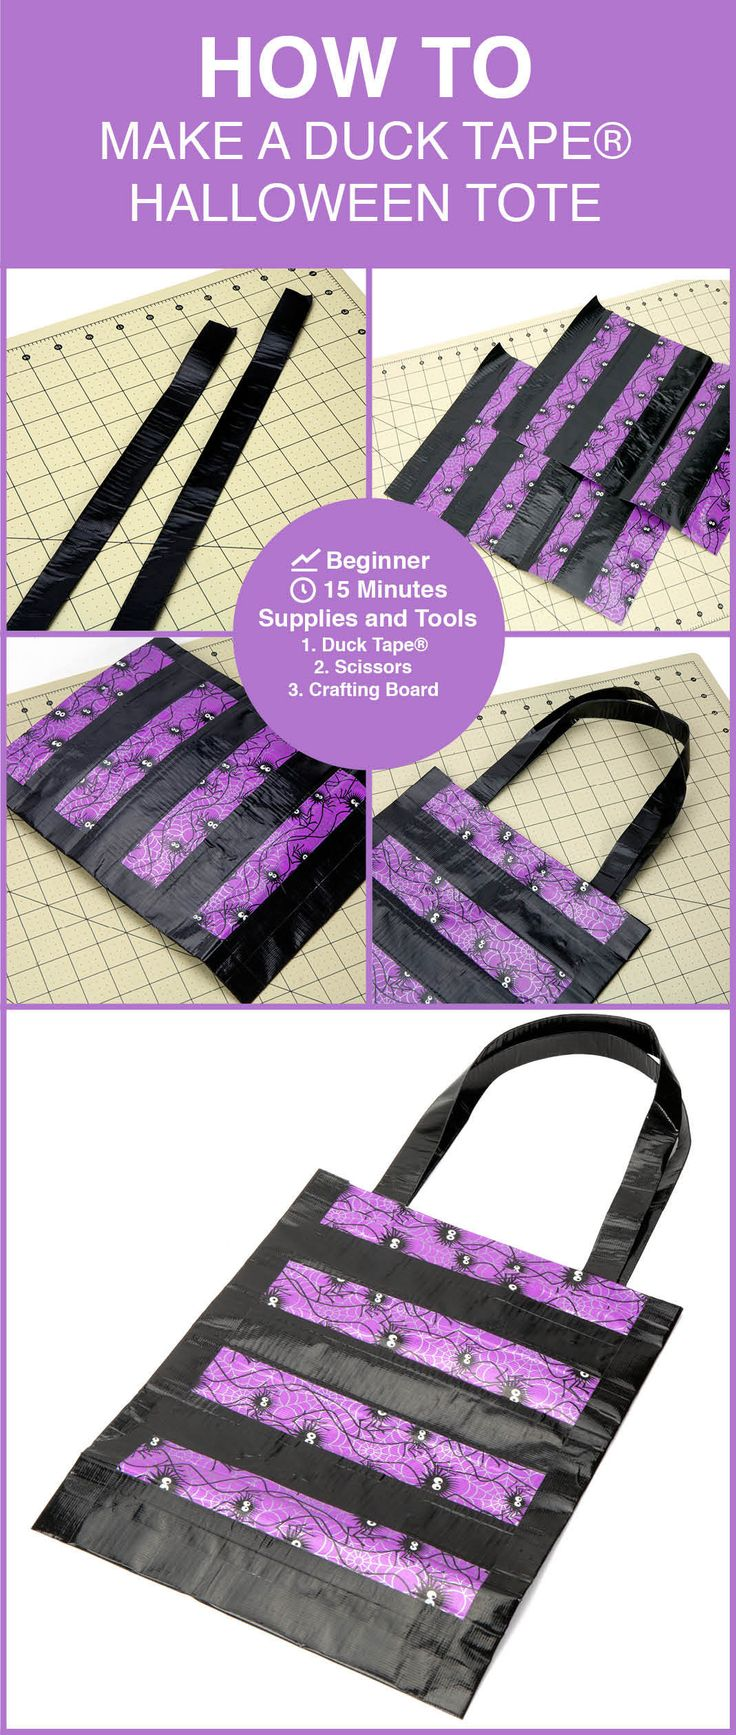 Make a halloween tote with Duck Tape® to get in a spooky mood: